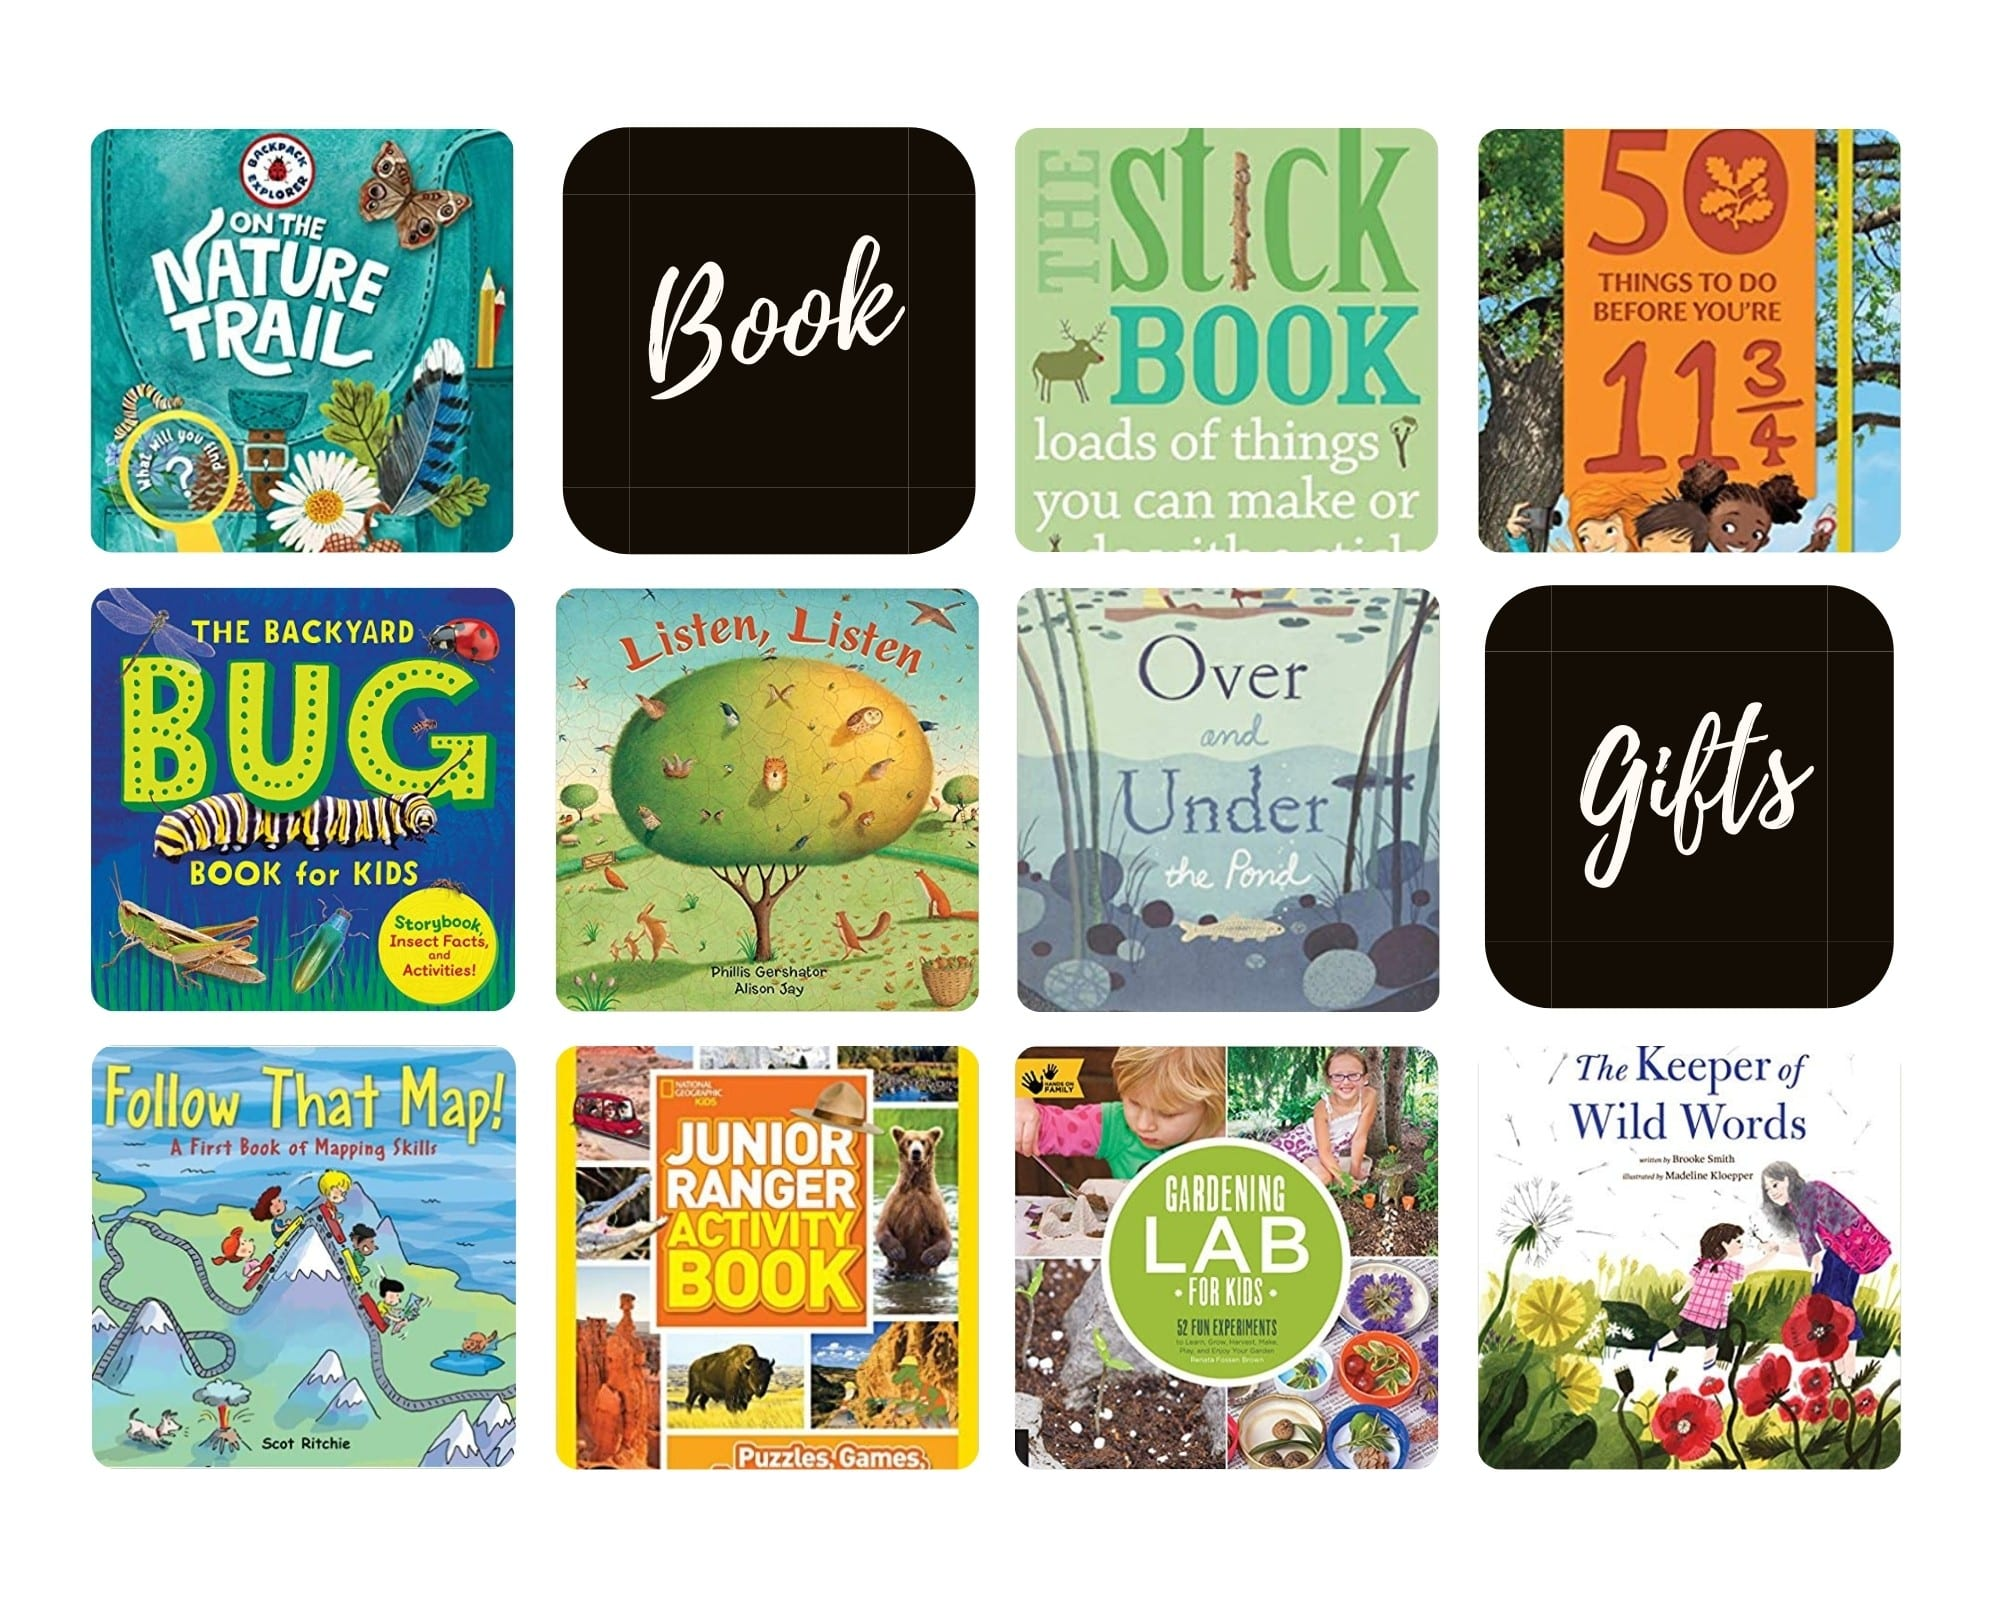 Product Images of all 10 Book Gift Ideas for Outdoorsy Kids to follow